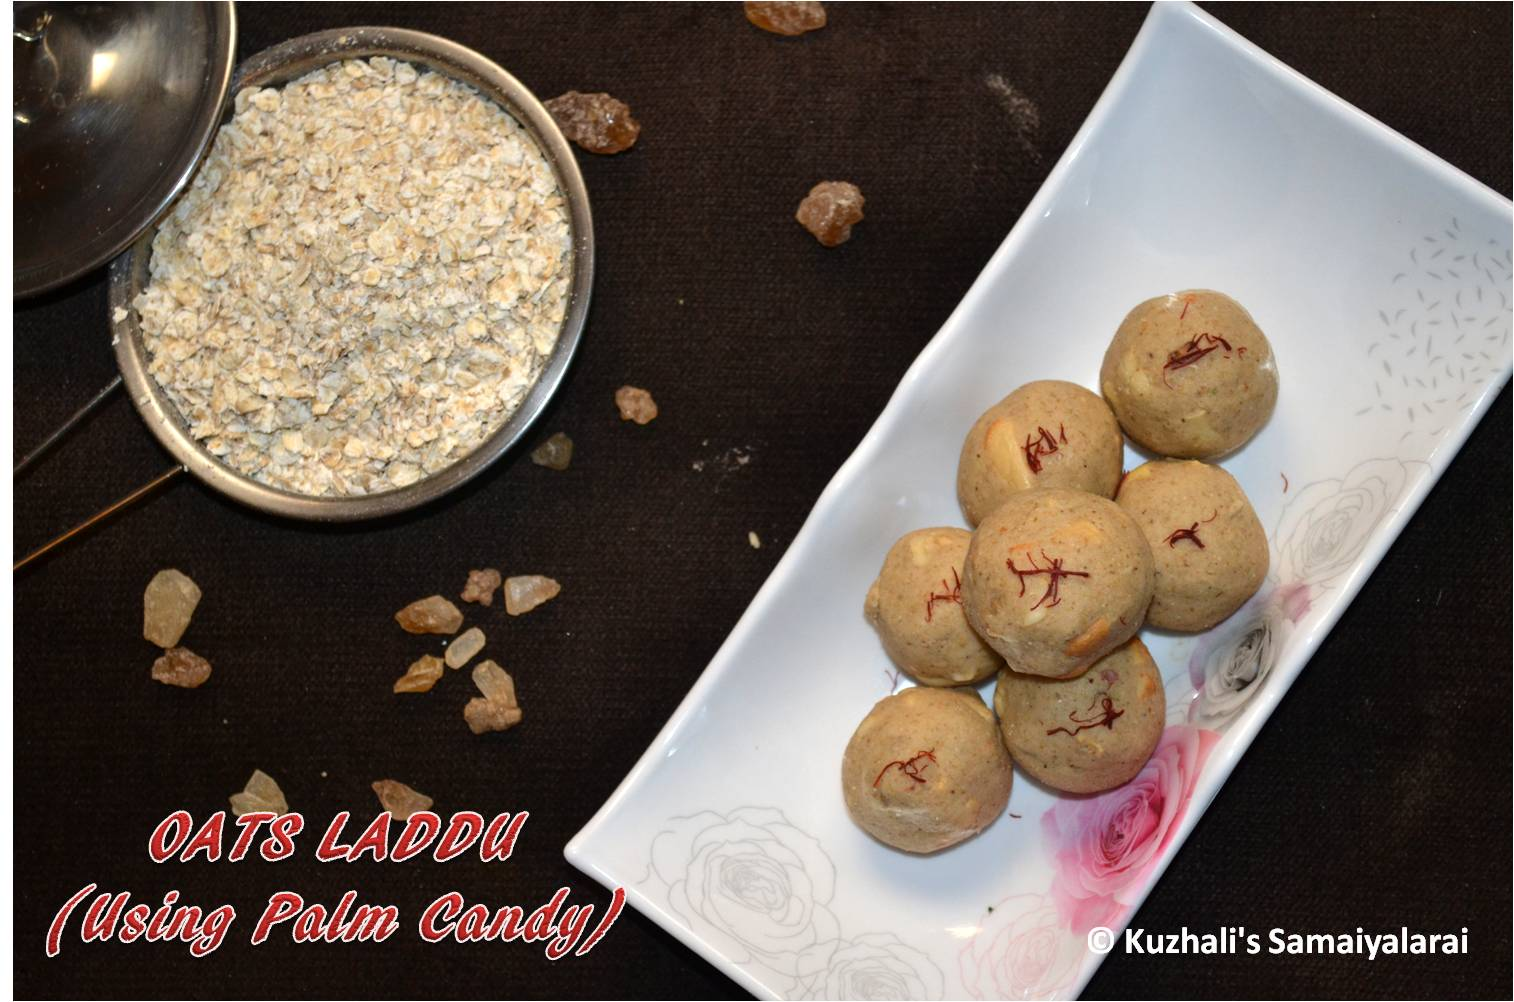 http://www.kuzhalisamaiyalarai.in/2017/05/oats-laddu-using-palm-candy-recipe-how.html